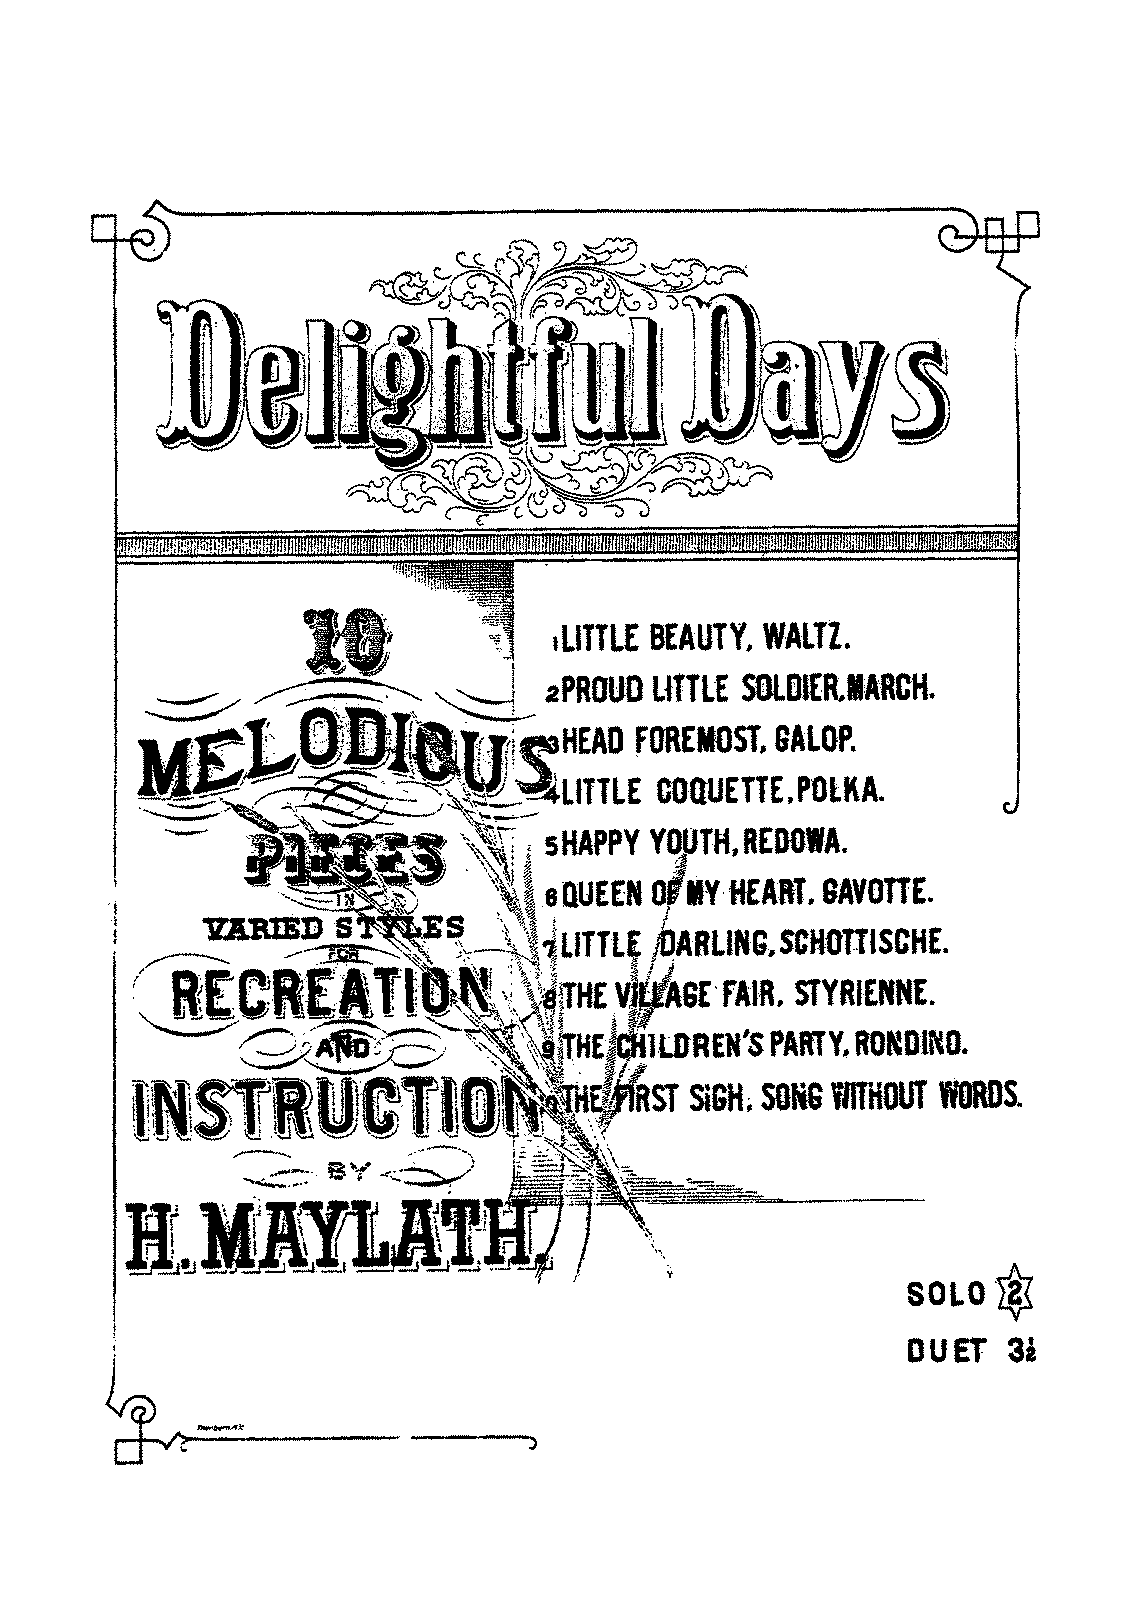 PMLP615168-Maylath - Delightfull Days - 10 Melodious Pieces 4H.pdf